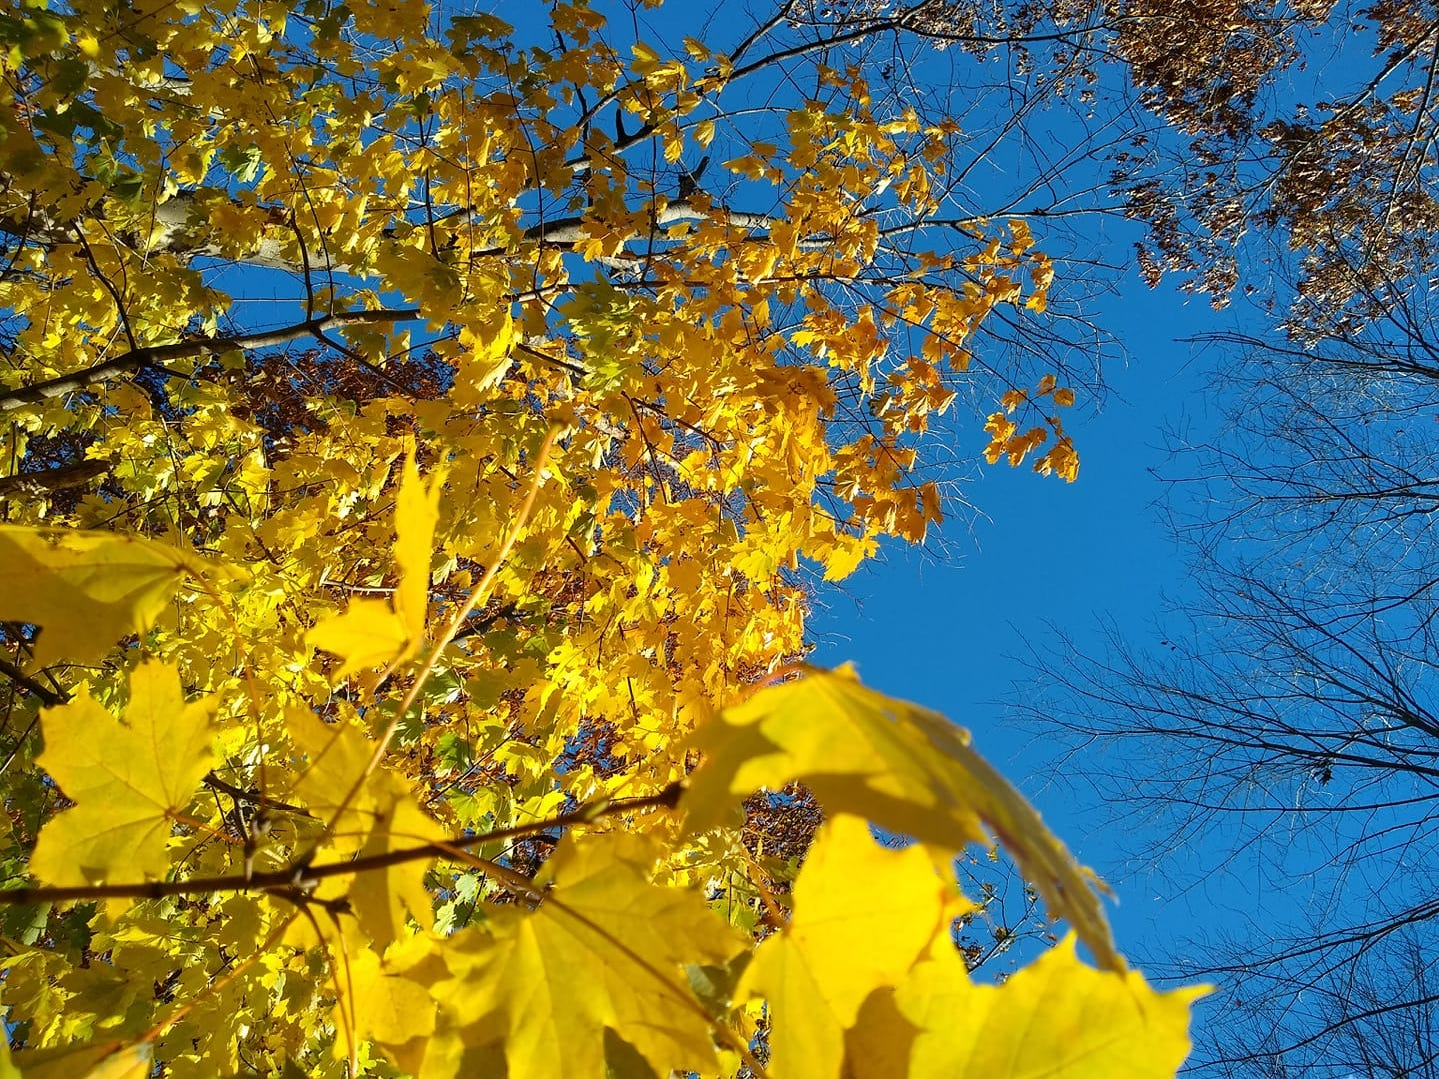 Blue sky and yellow leaves at Lake Redman Saturday.